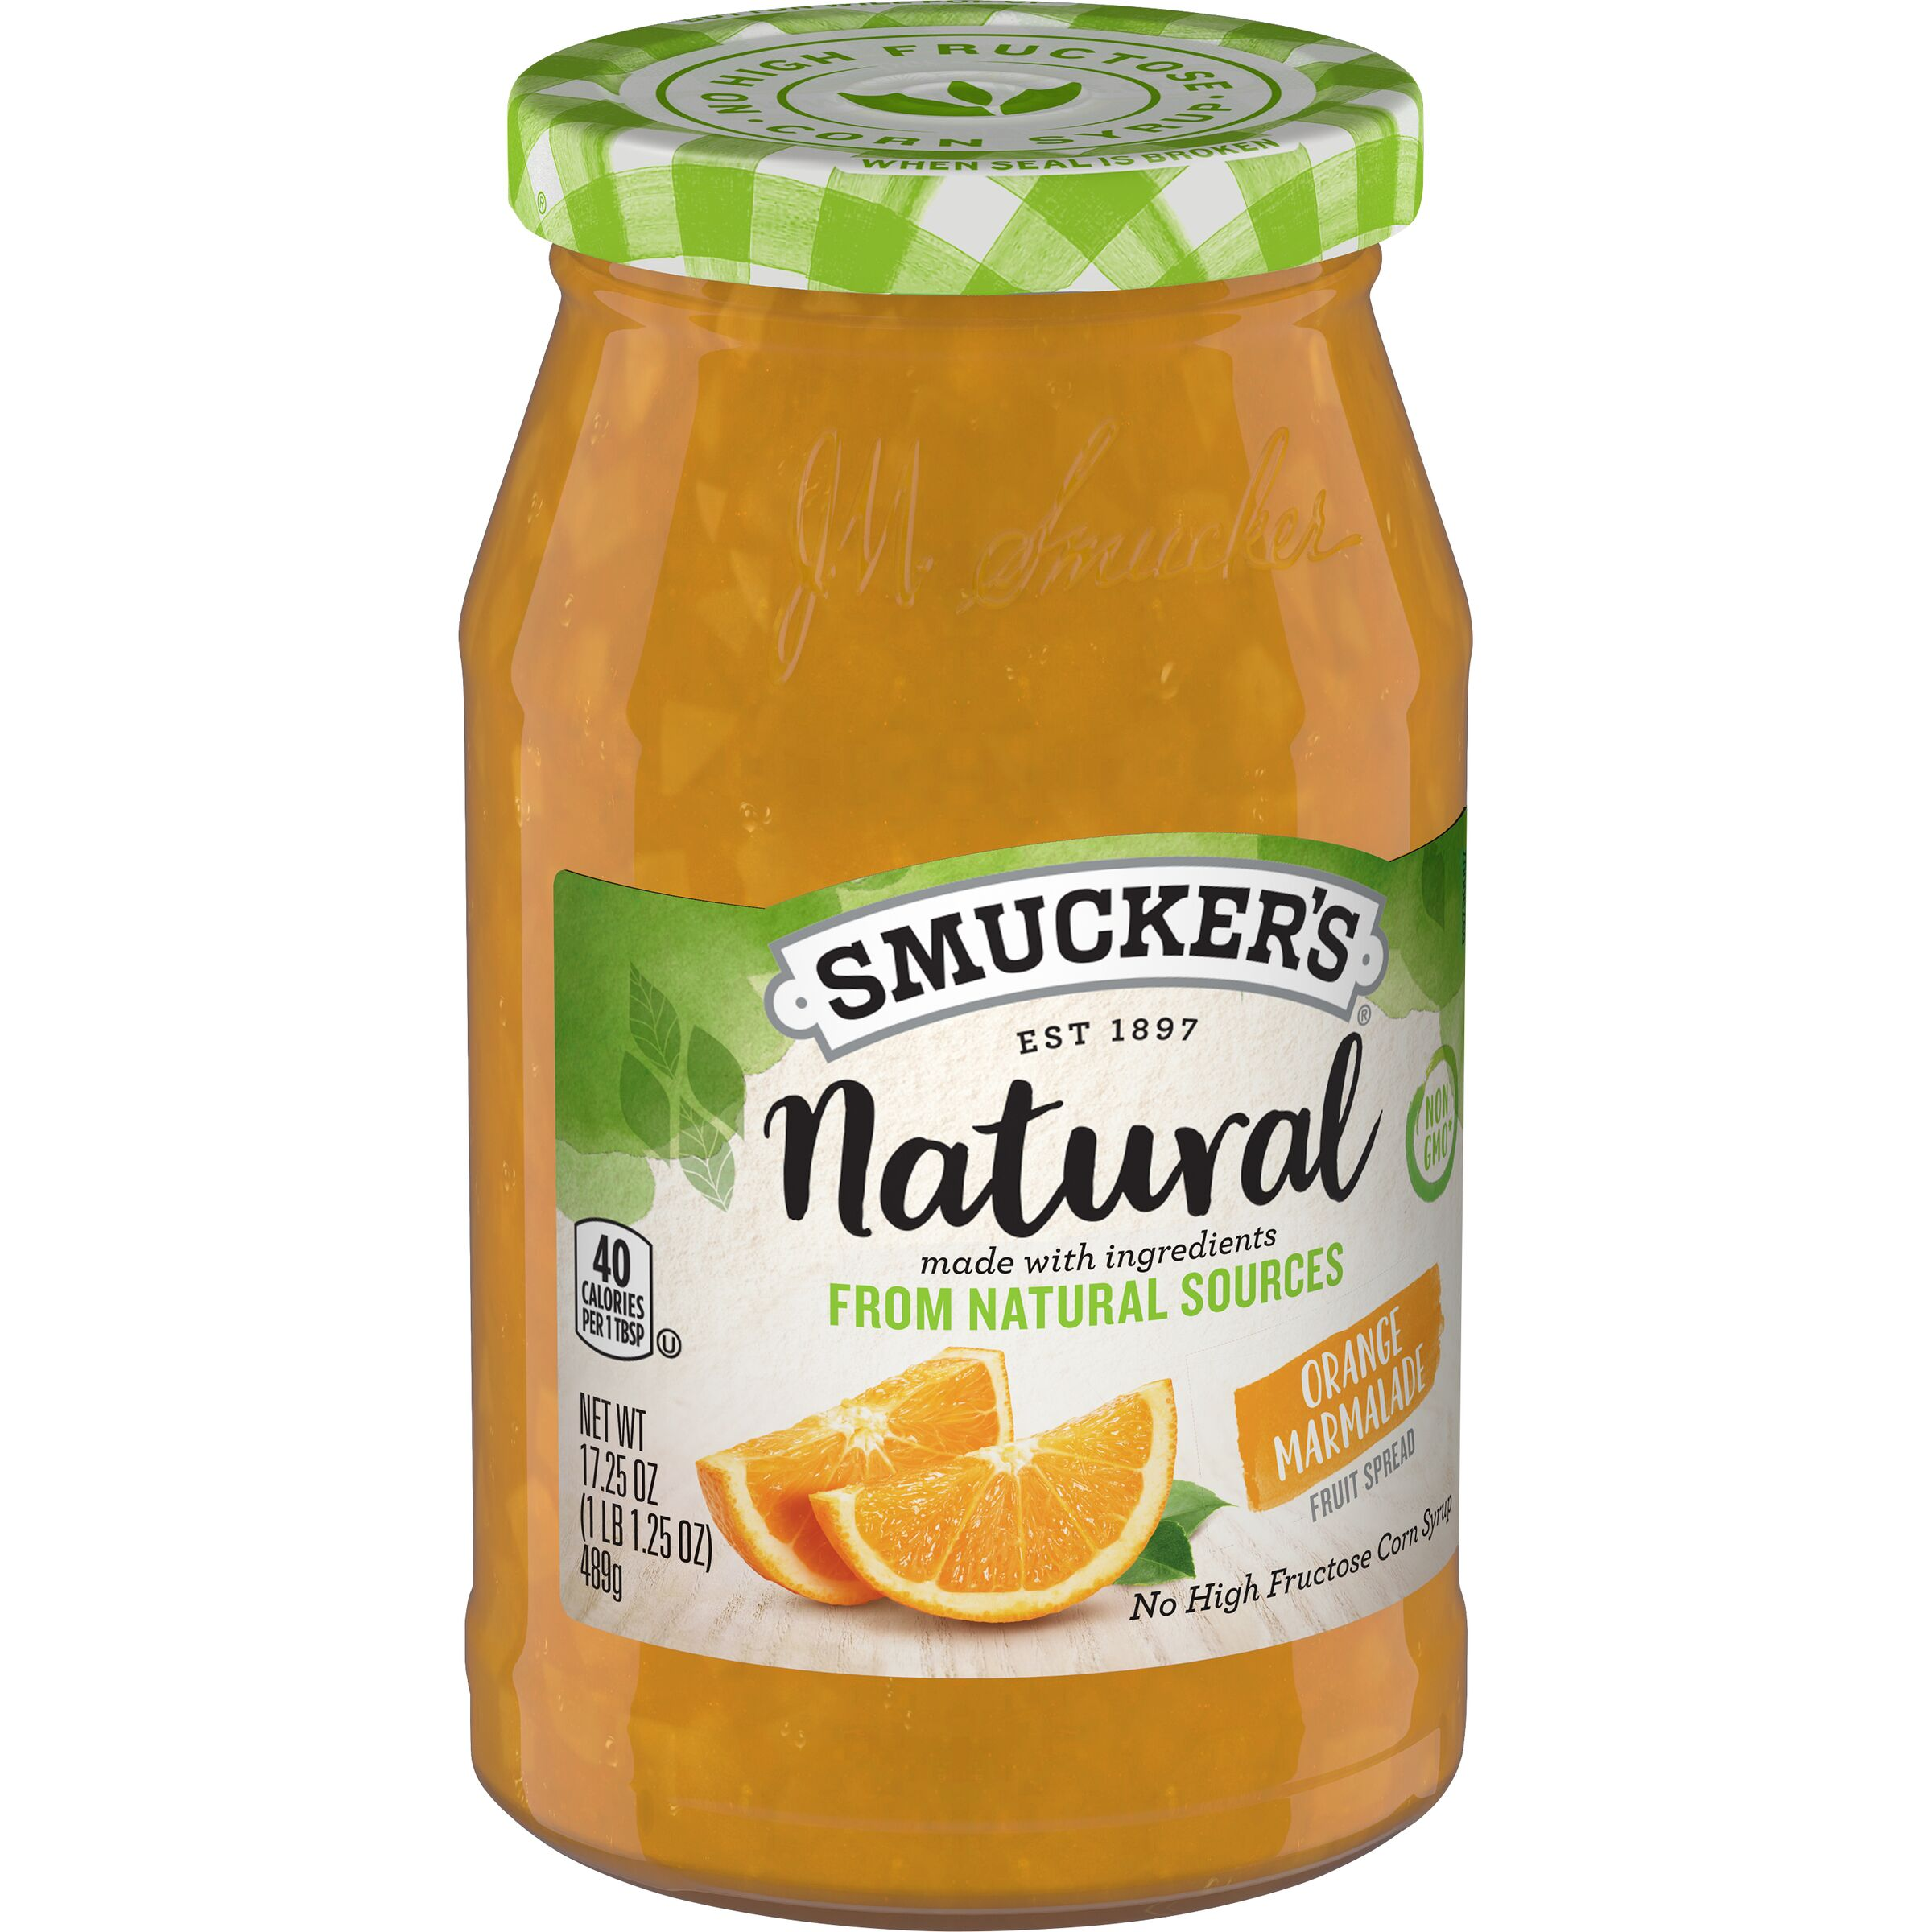 Smucker's Natural Orange Maramalade Fruit Spread